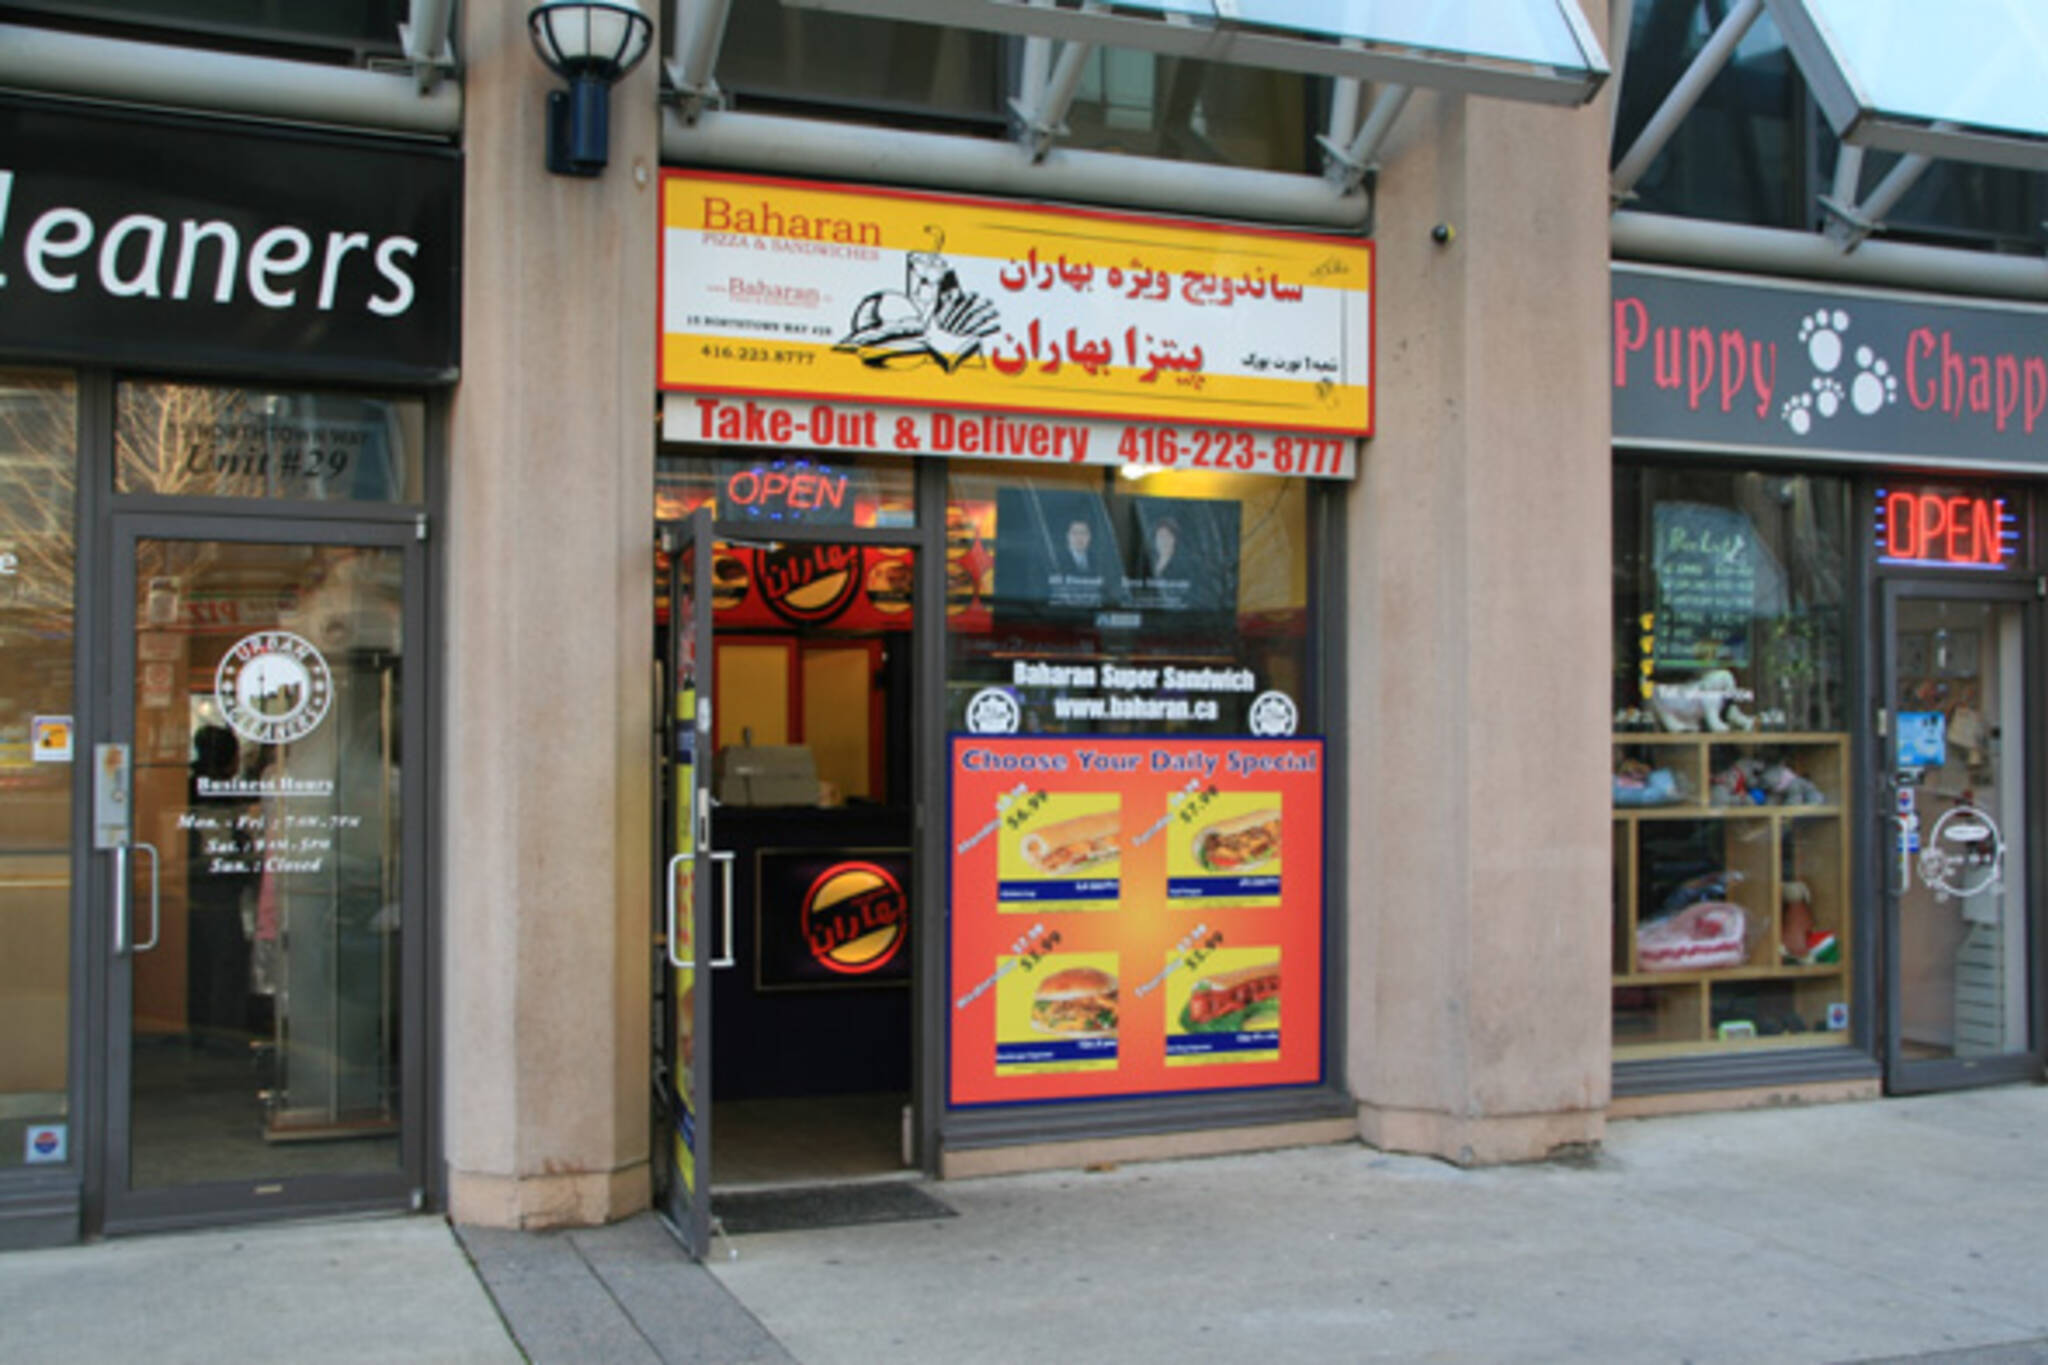 Baharan Pizza and Sandwiches